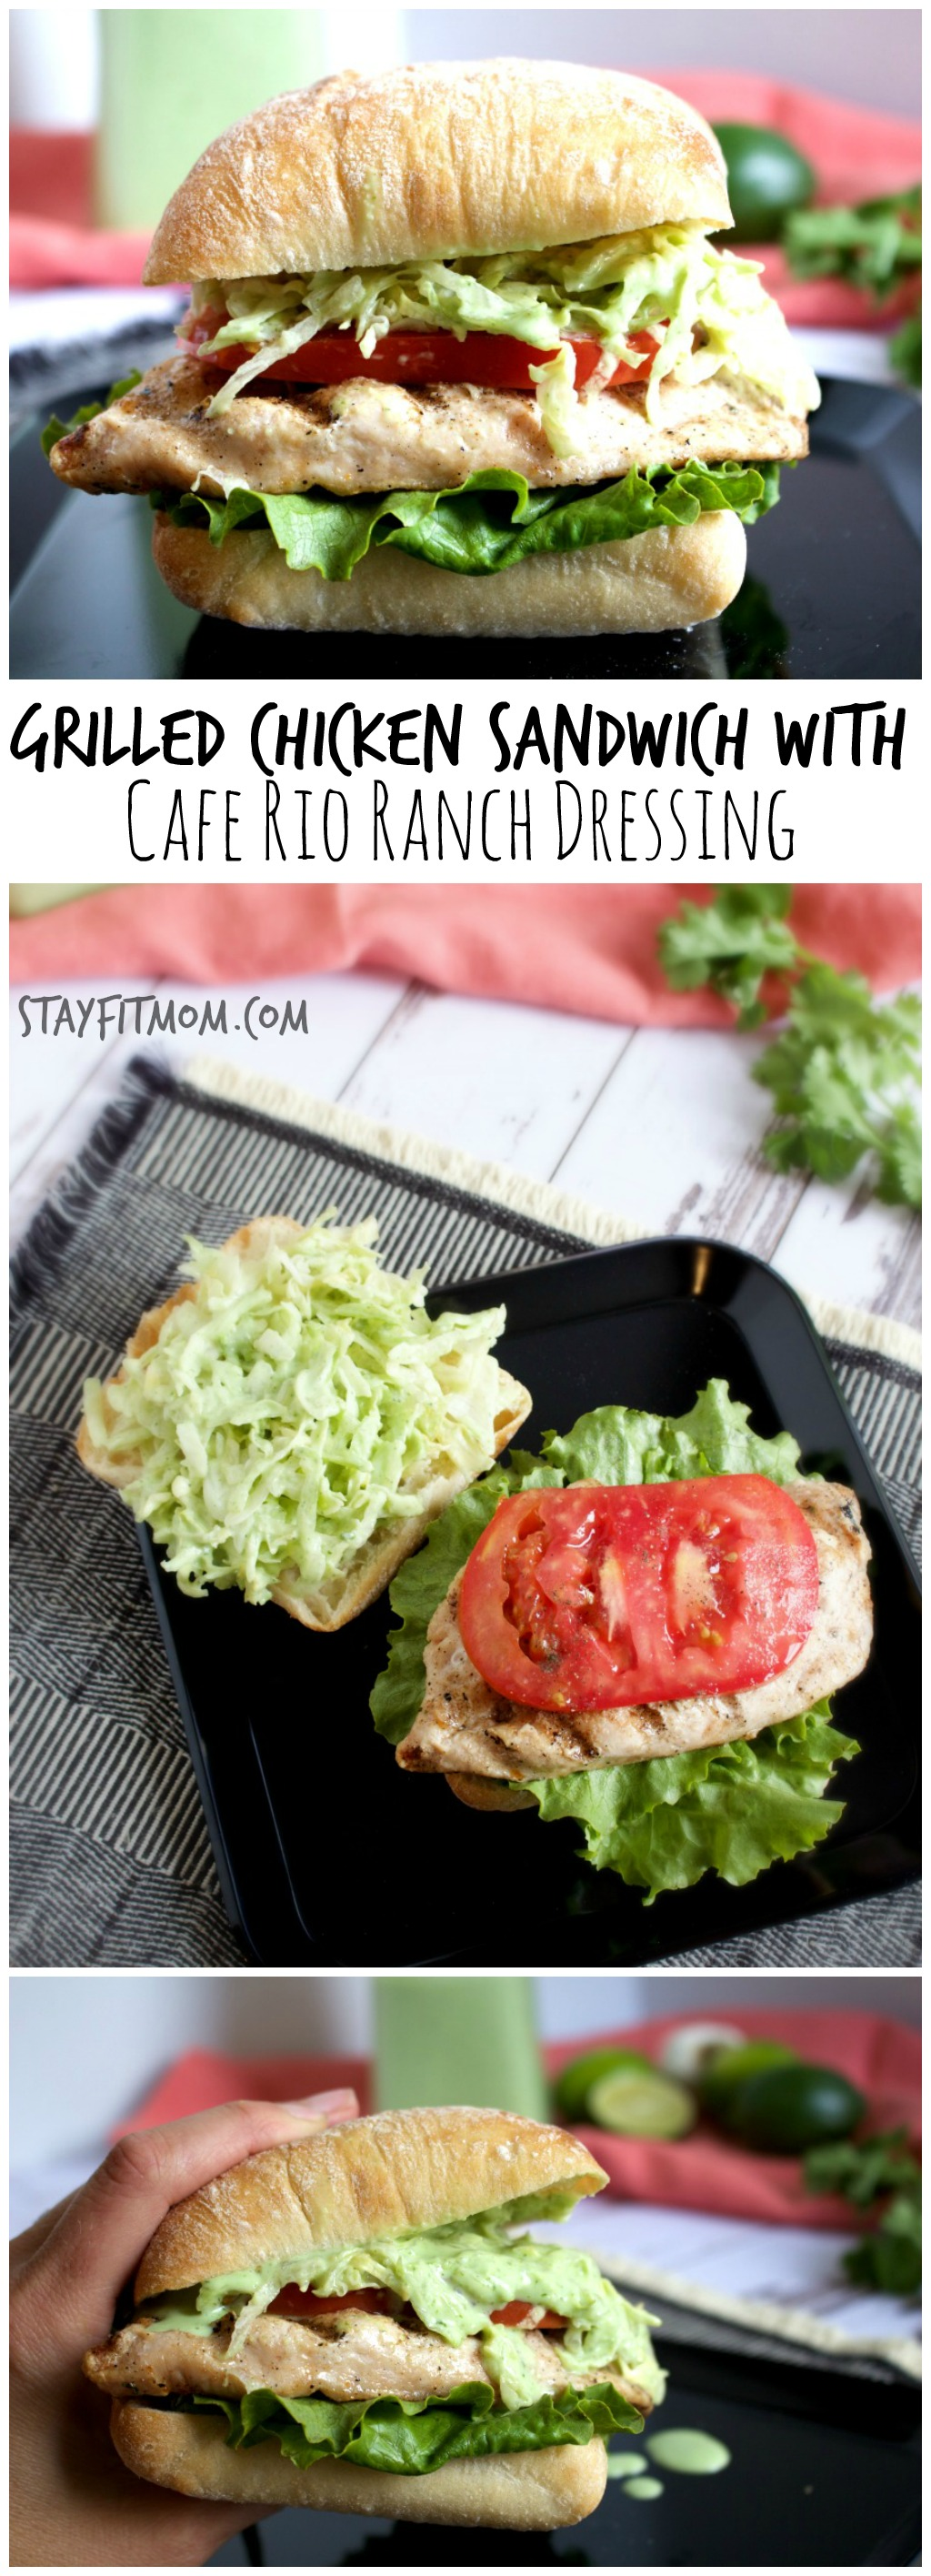 Cafe Rio Ranch Dressing Copycat Recipe Grilled Chicken Sandwich Stay Fit Mom